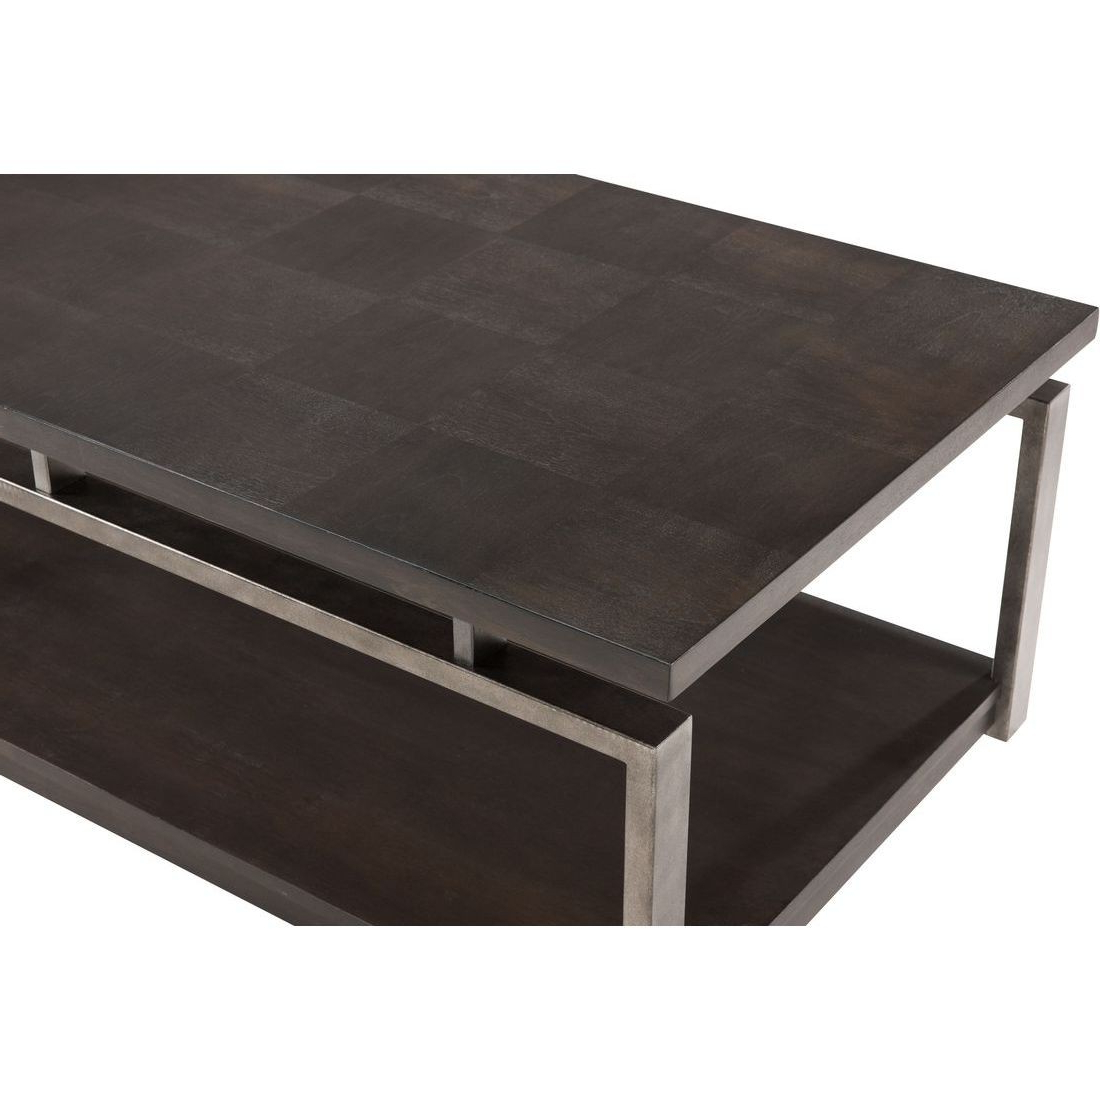 2019 Magnussen Alton Rectangular Cocktail Table In Platinum Charcoal In Alton Cocktail Tables (View 1 of 20)